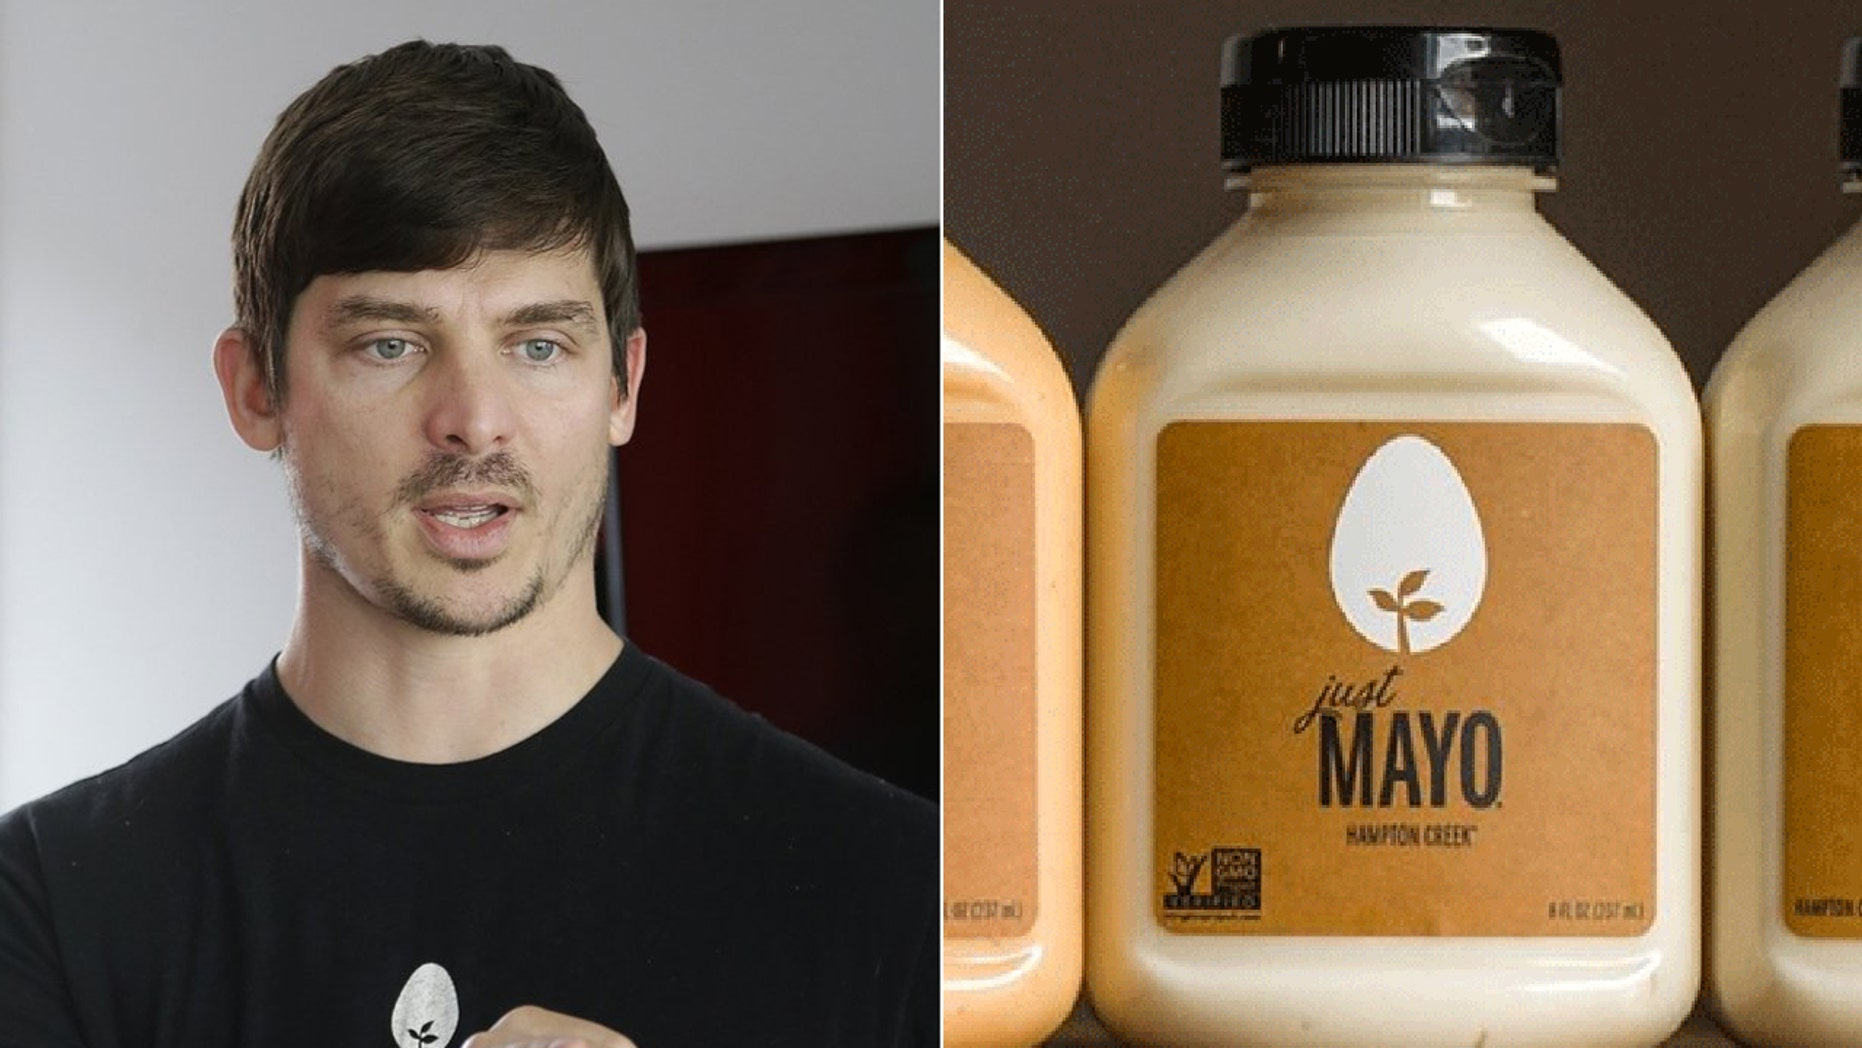 Hampton Creek CEO Josh Tetrick is under fire for possibly inflating sales of Just Mayo, a vegan mayonnaise spread.